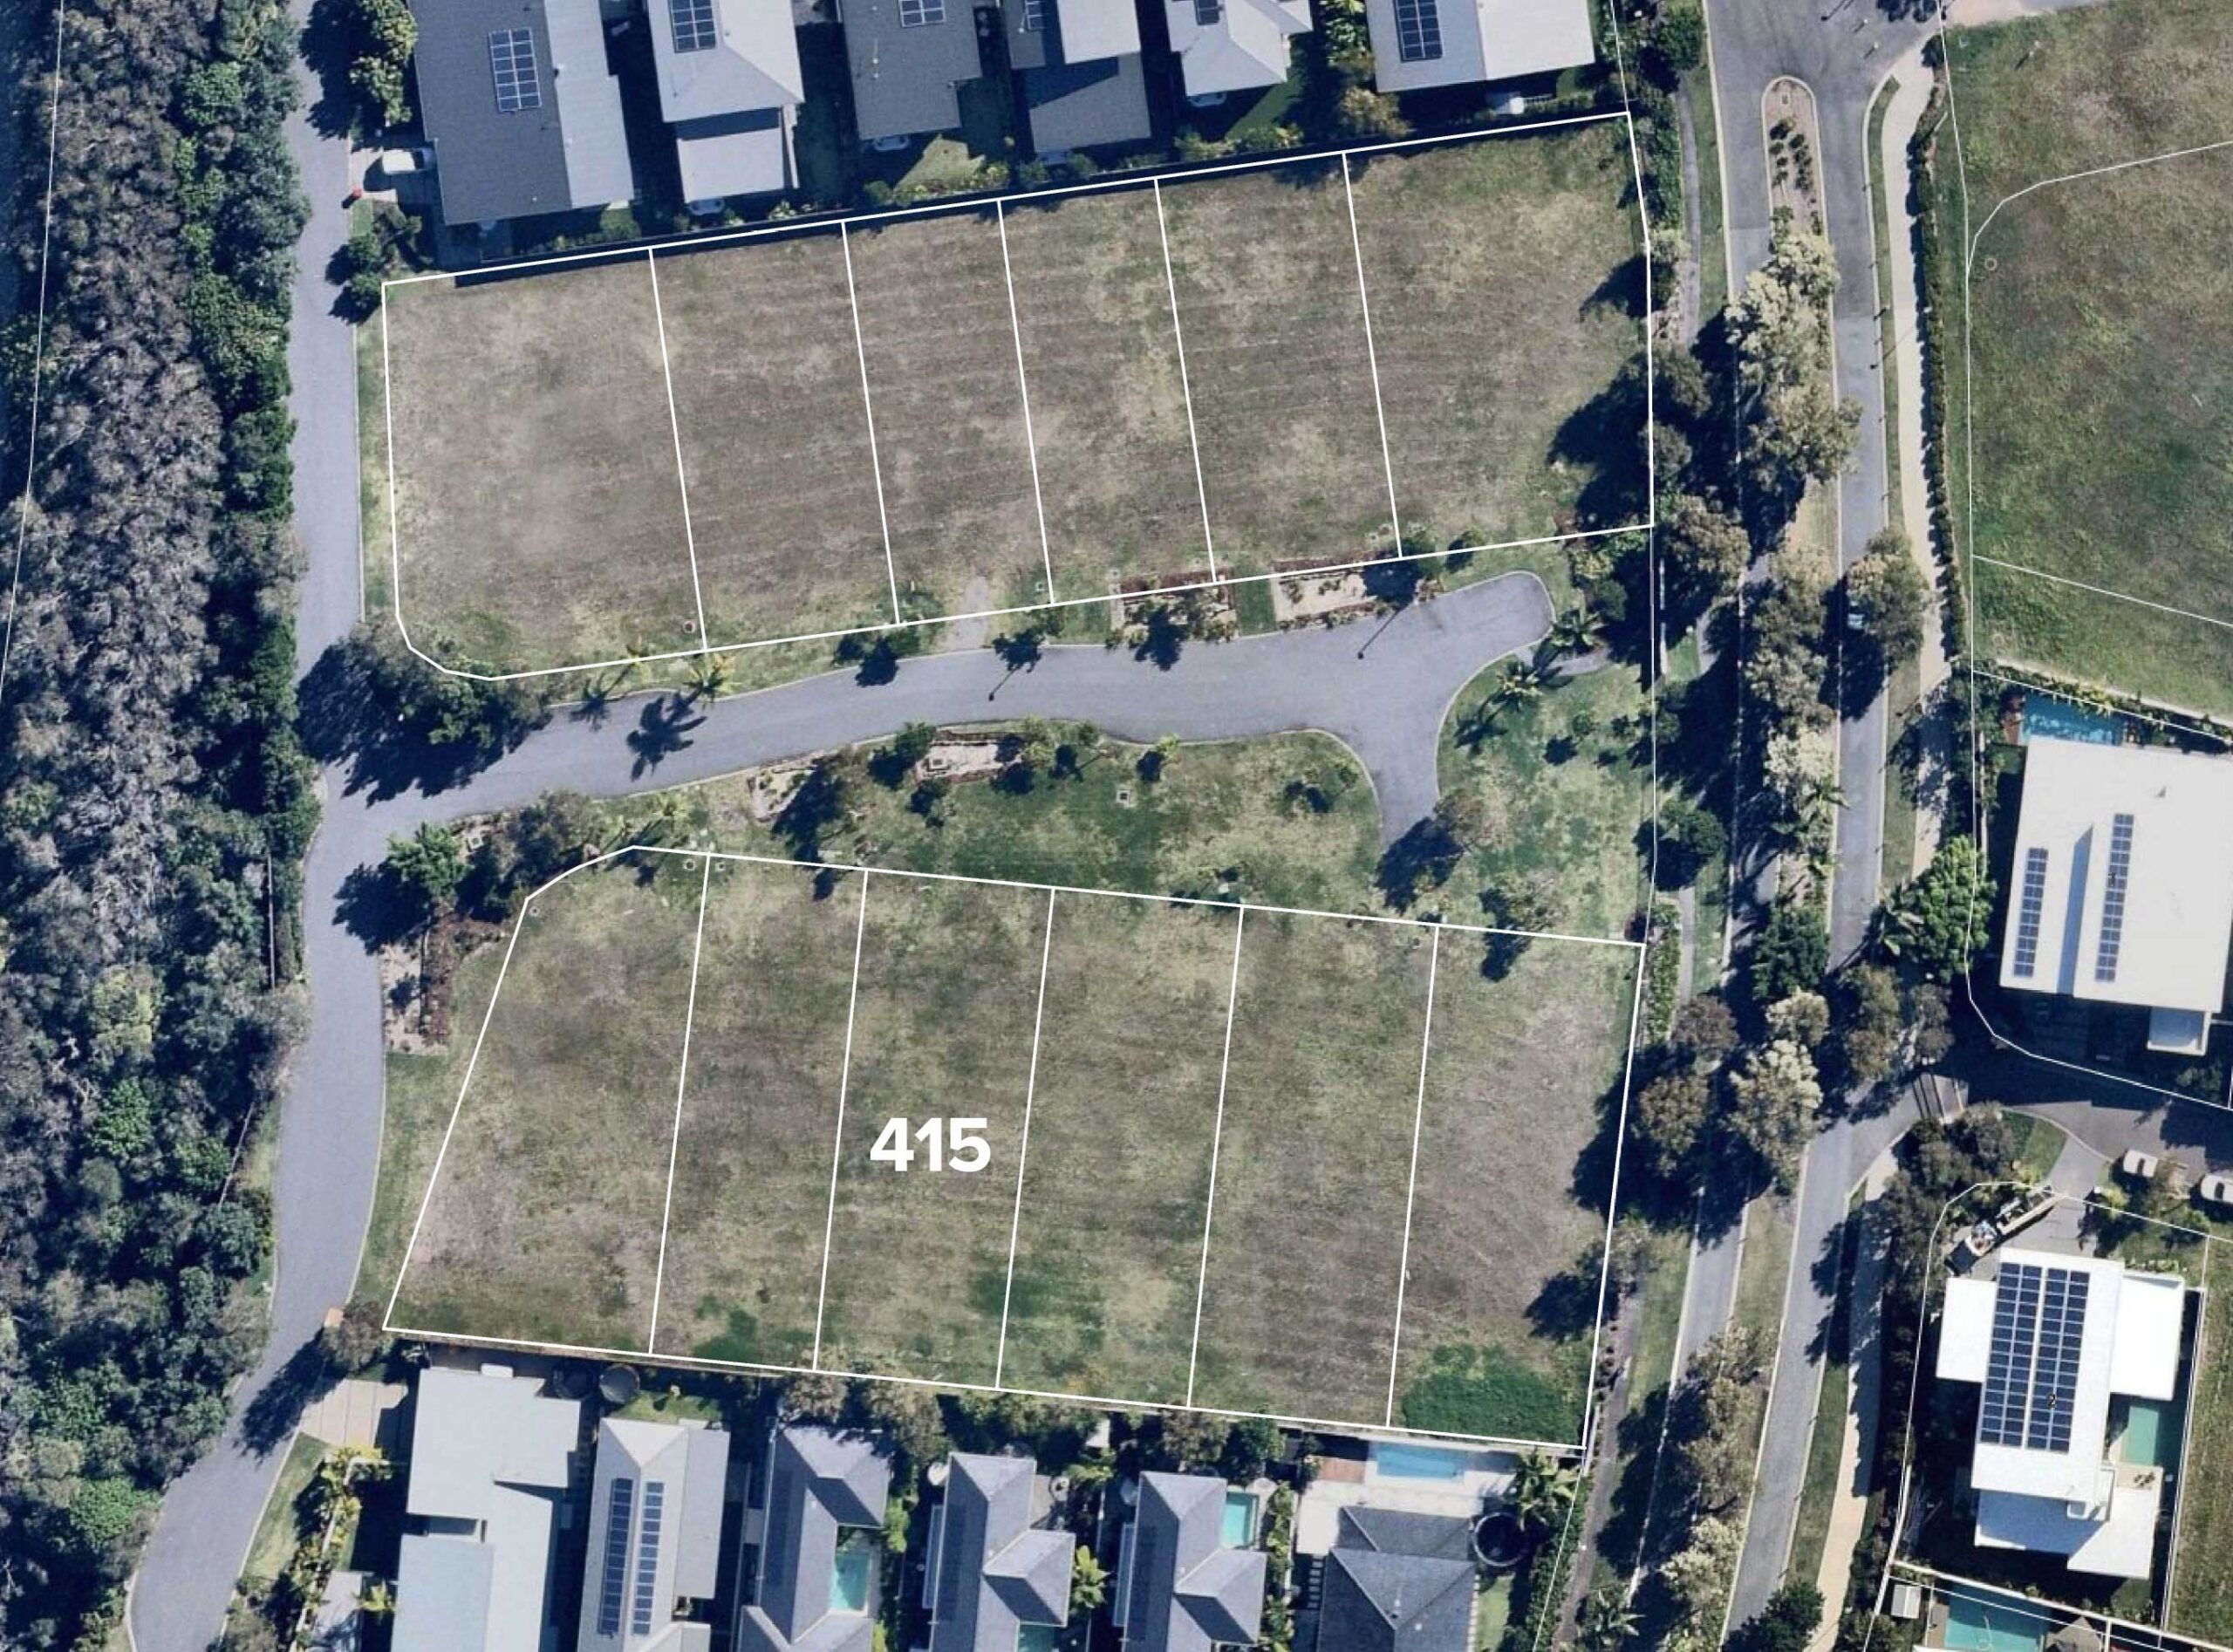 Aerial view of Lot 415